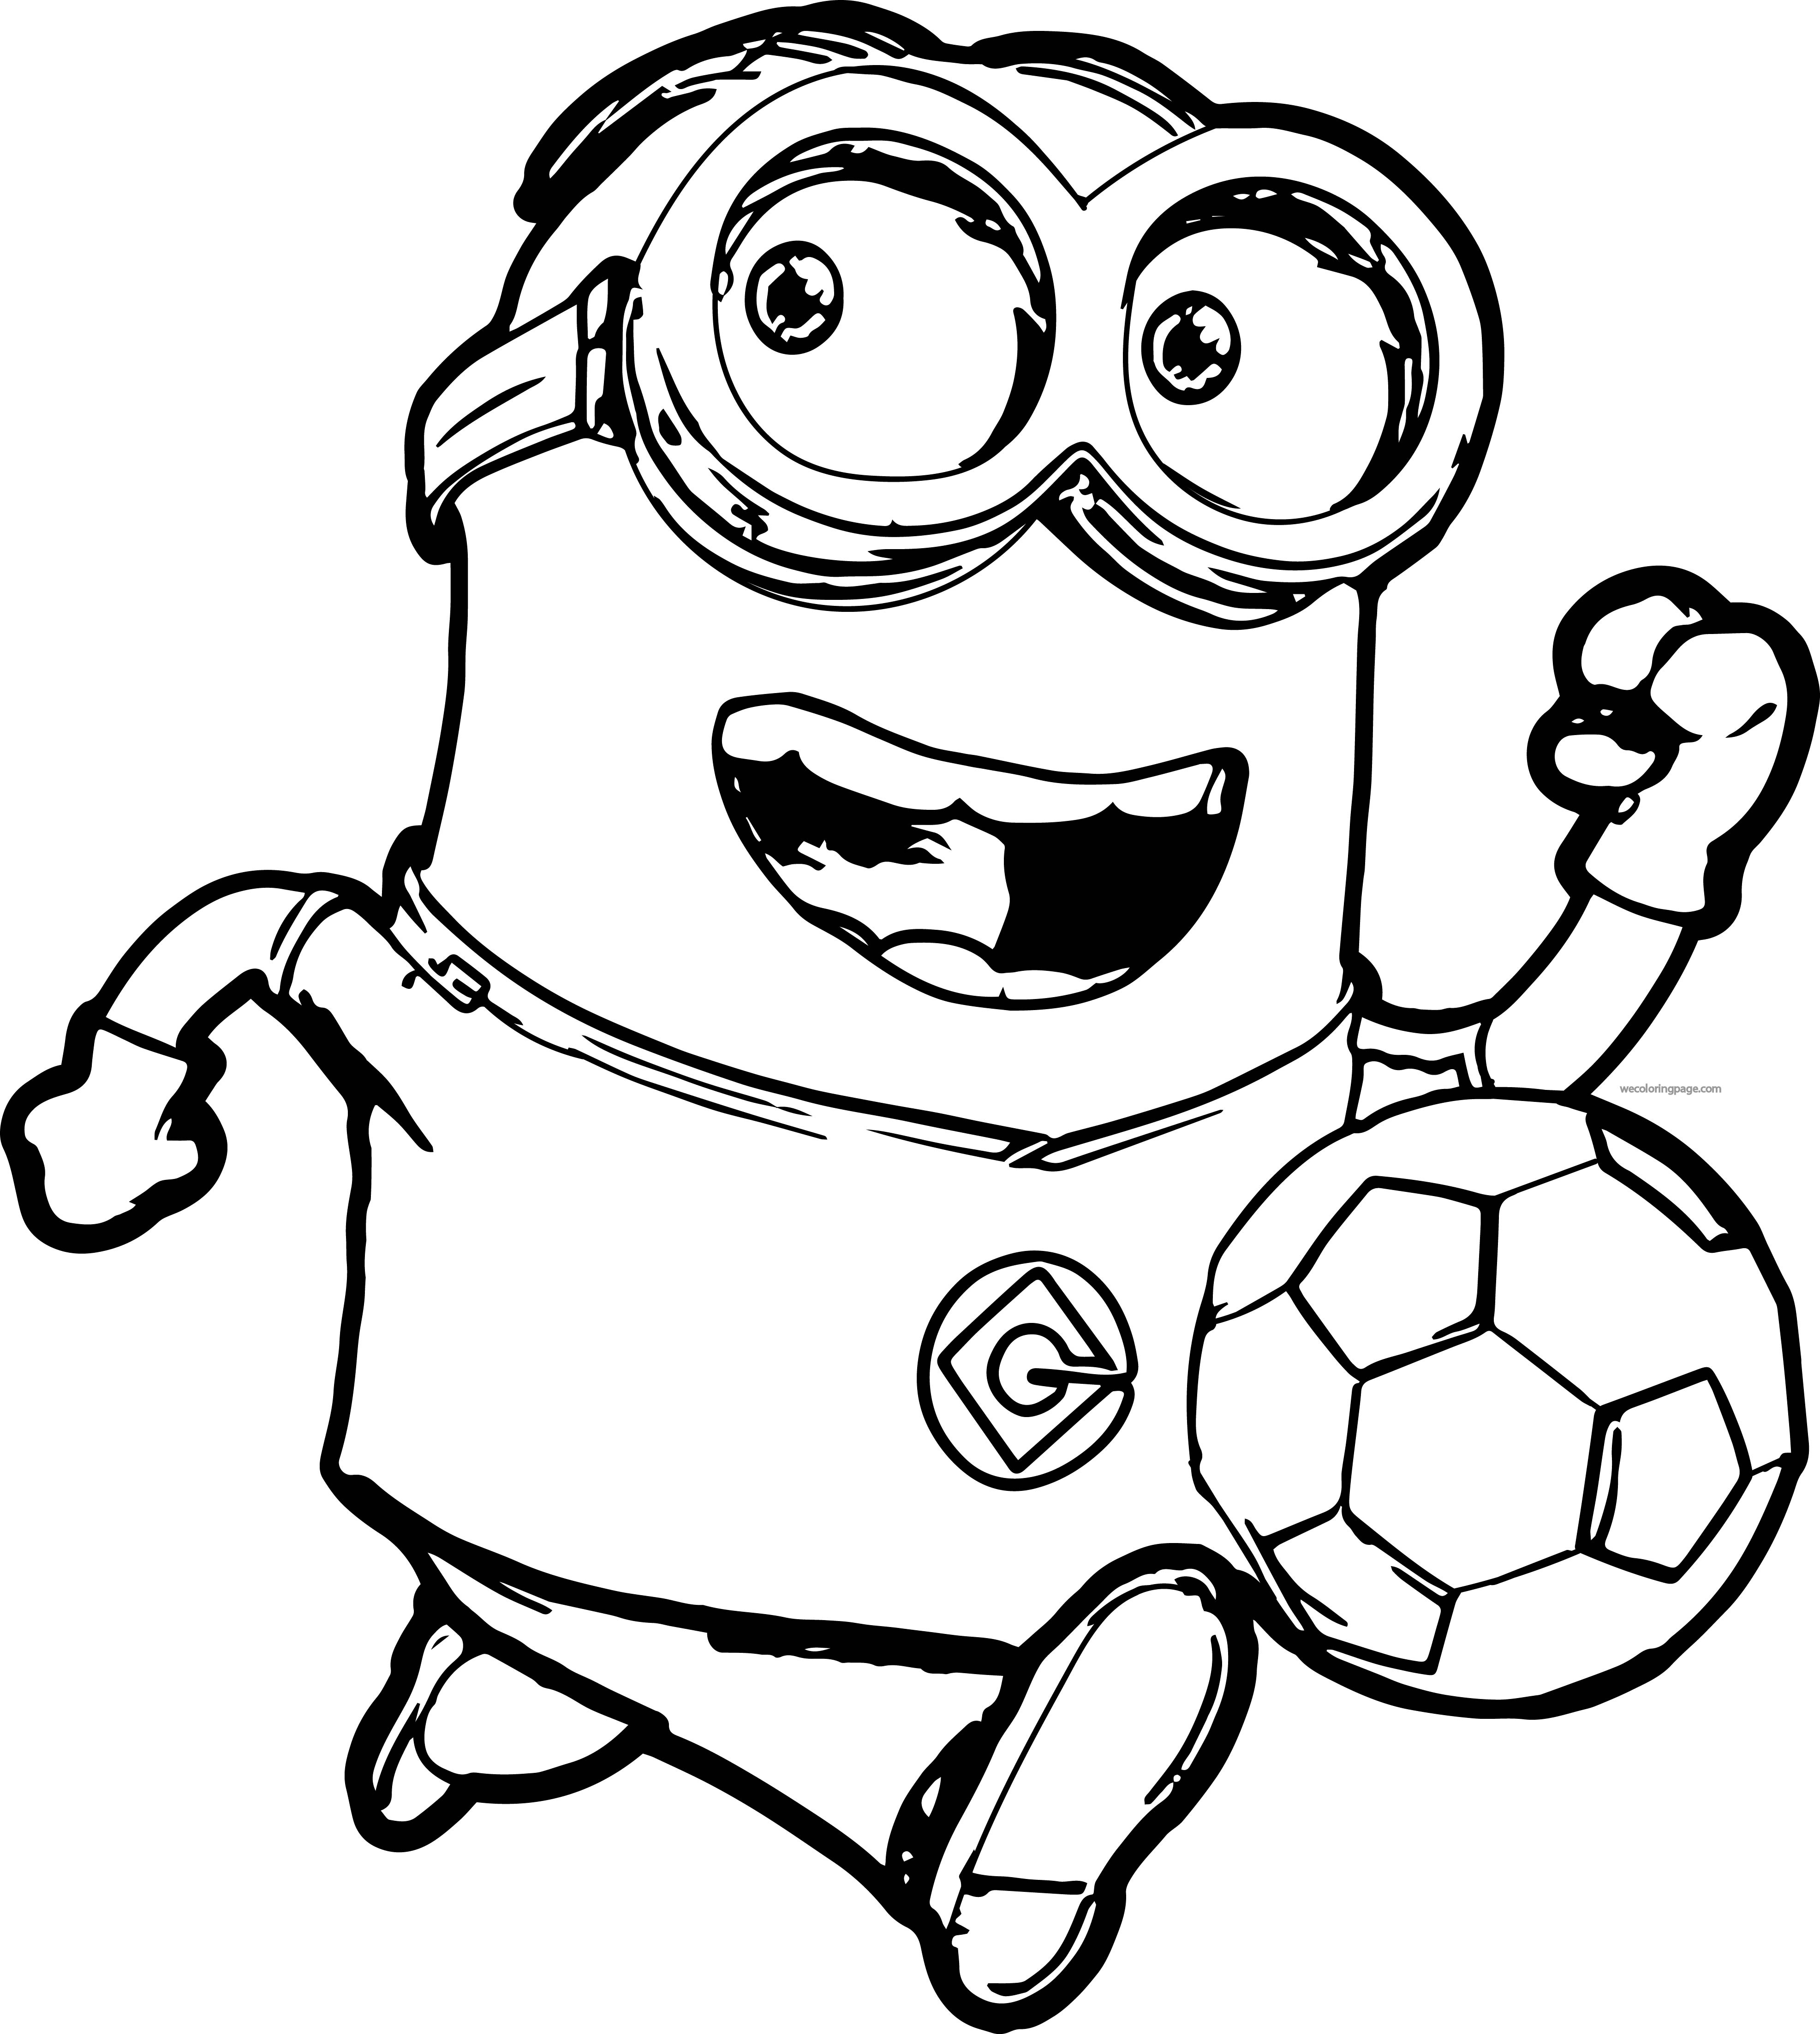 3945x4408 Minion Coloring Pages To Print Beautiful Minion Coloring Pages